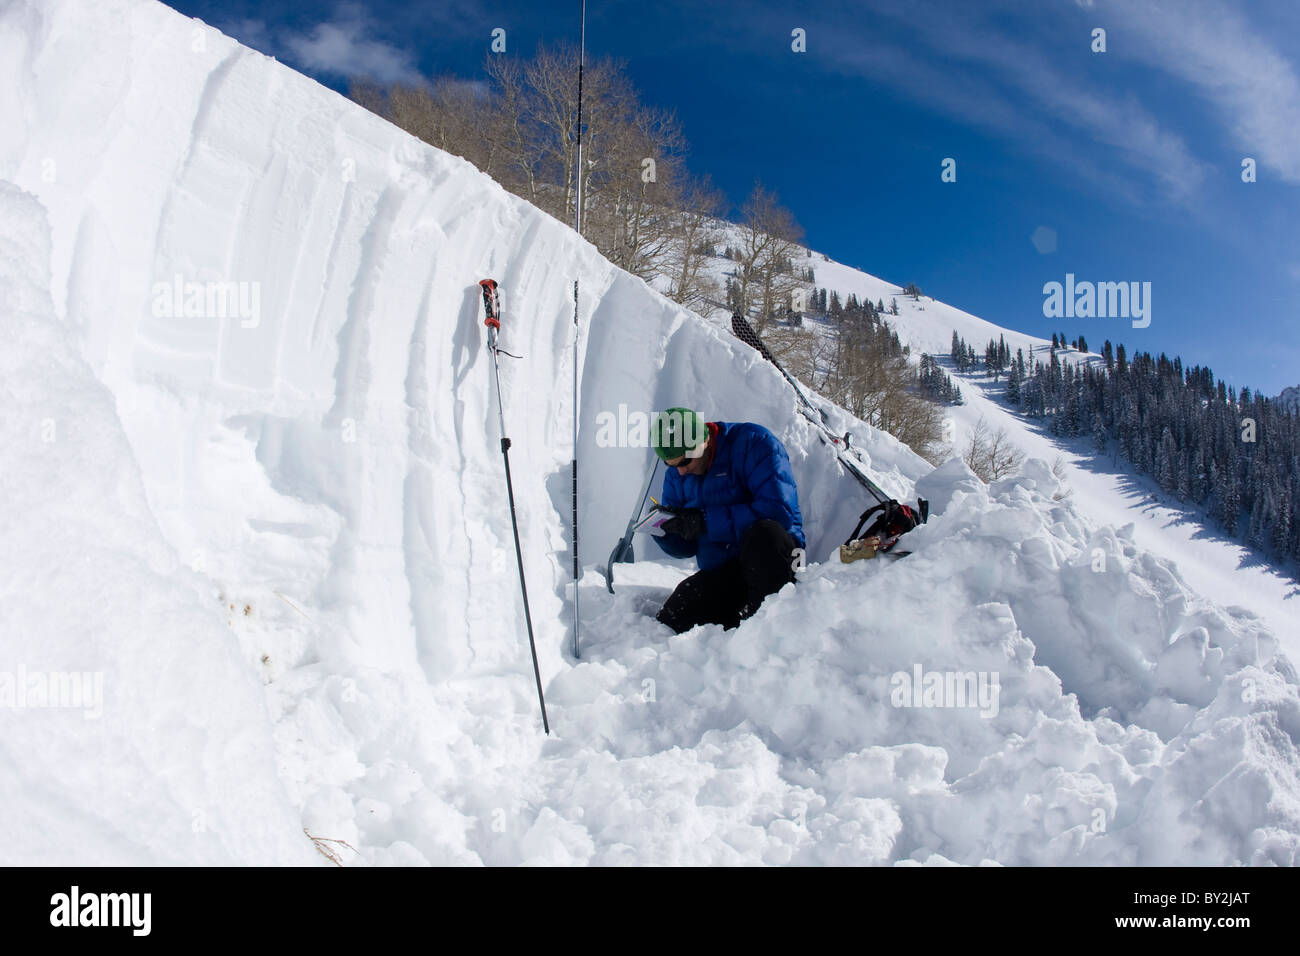 One man recording snow conditions in a snow pit on a blue sky day. - Stock Image